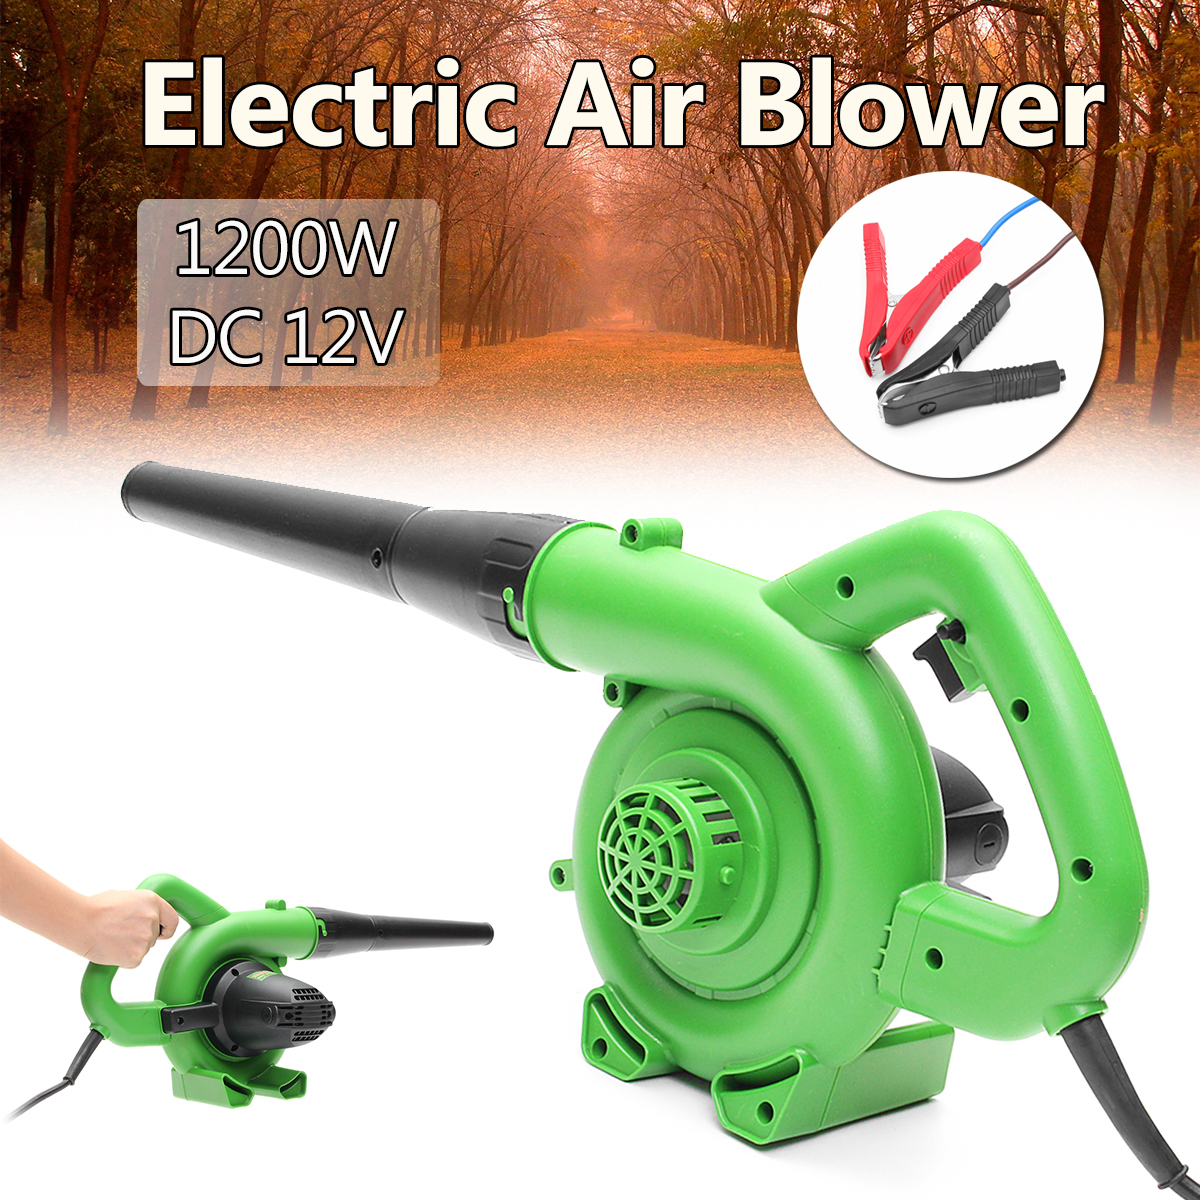 1200W Portable Electric Air Blower Handheld Garden Leaf Collector Car Computer Cleaner Dust Air Blowing Collecting Machine air filter fits zenoah model eb700 new air cleaner cheap leaf blower parts